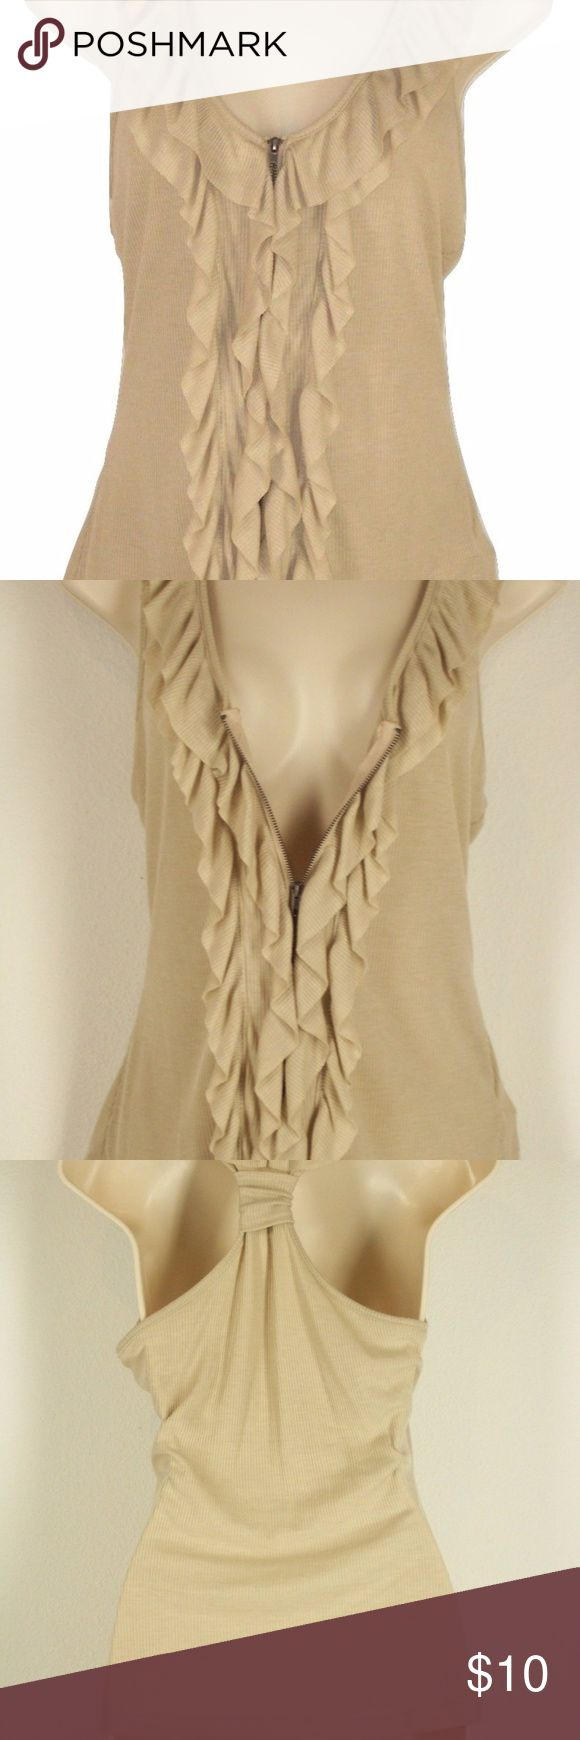 "Beige Ruffled Zip Up Racerback Sleeveless Top This is a sleeveless beige women's top in excellent, like-new condition. Only worn once.  Very feminine, soft and neutral. Can be paired with jeans, slacks or a skirt. Racerback with ruffled zipper front.  Chest 15"" Length 25"" mine Tops"